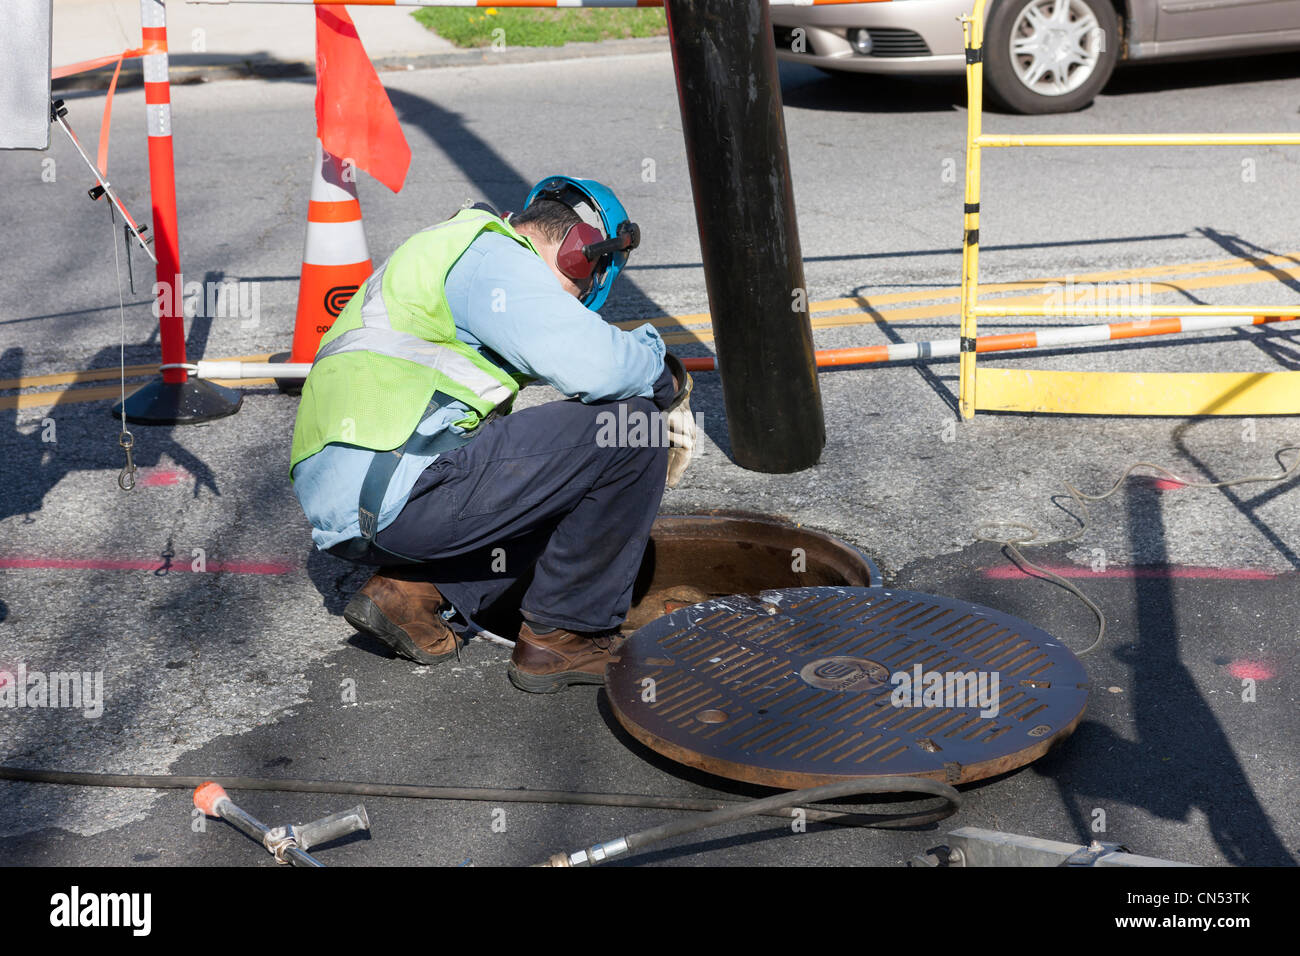 A Con Edison crew member works by a manhole on a street in White Plains, New York. - Stock Image